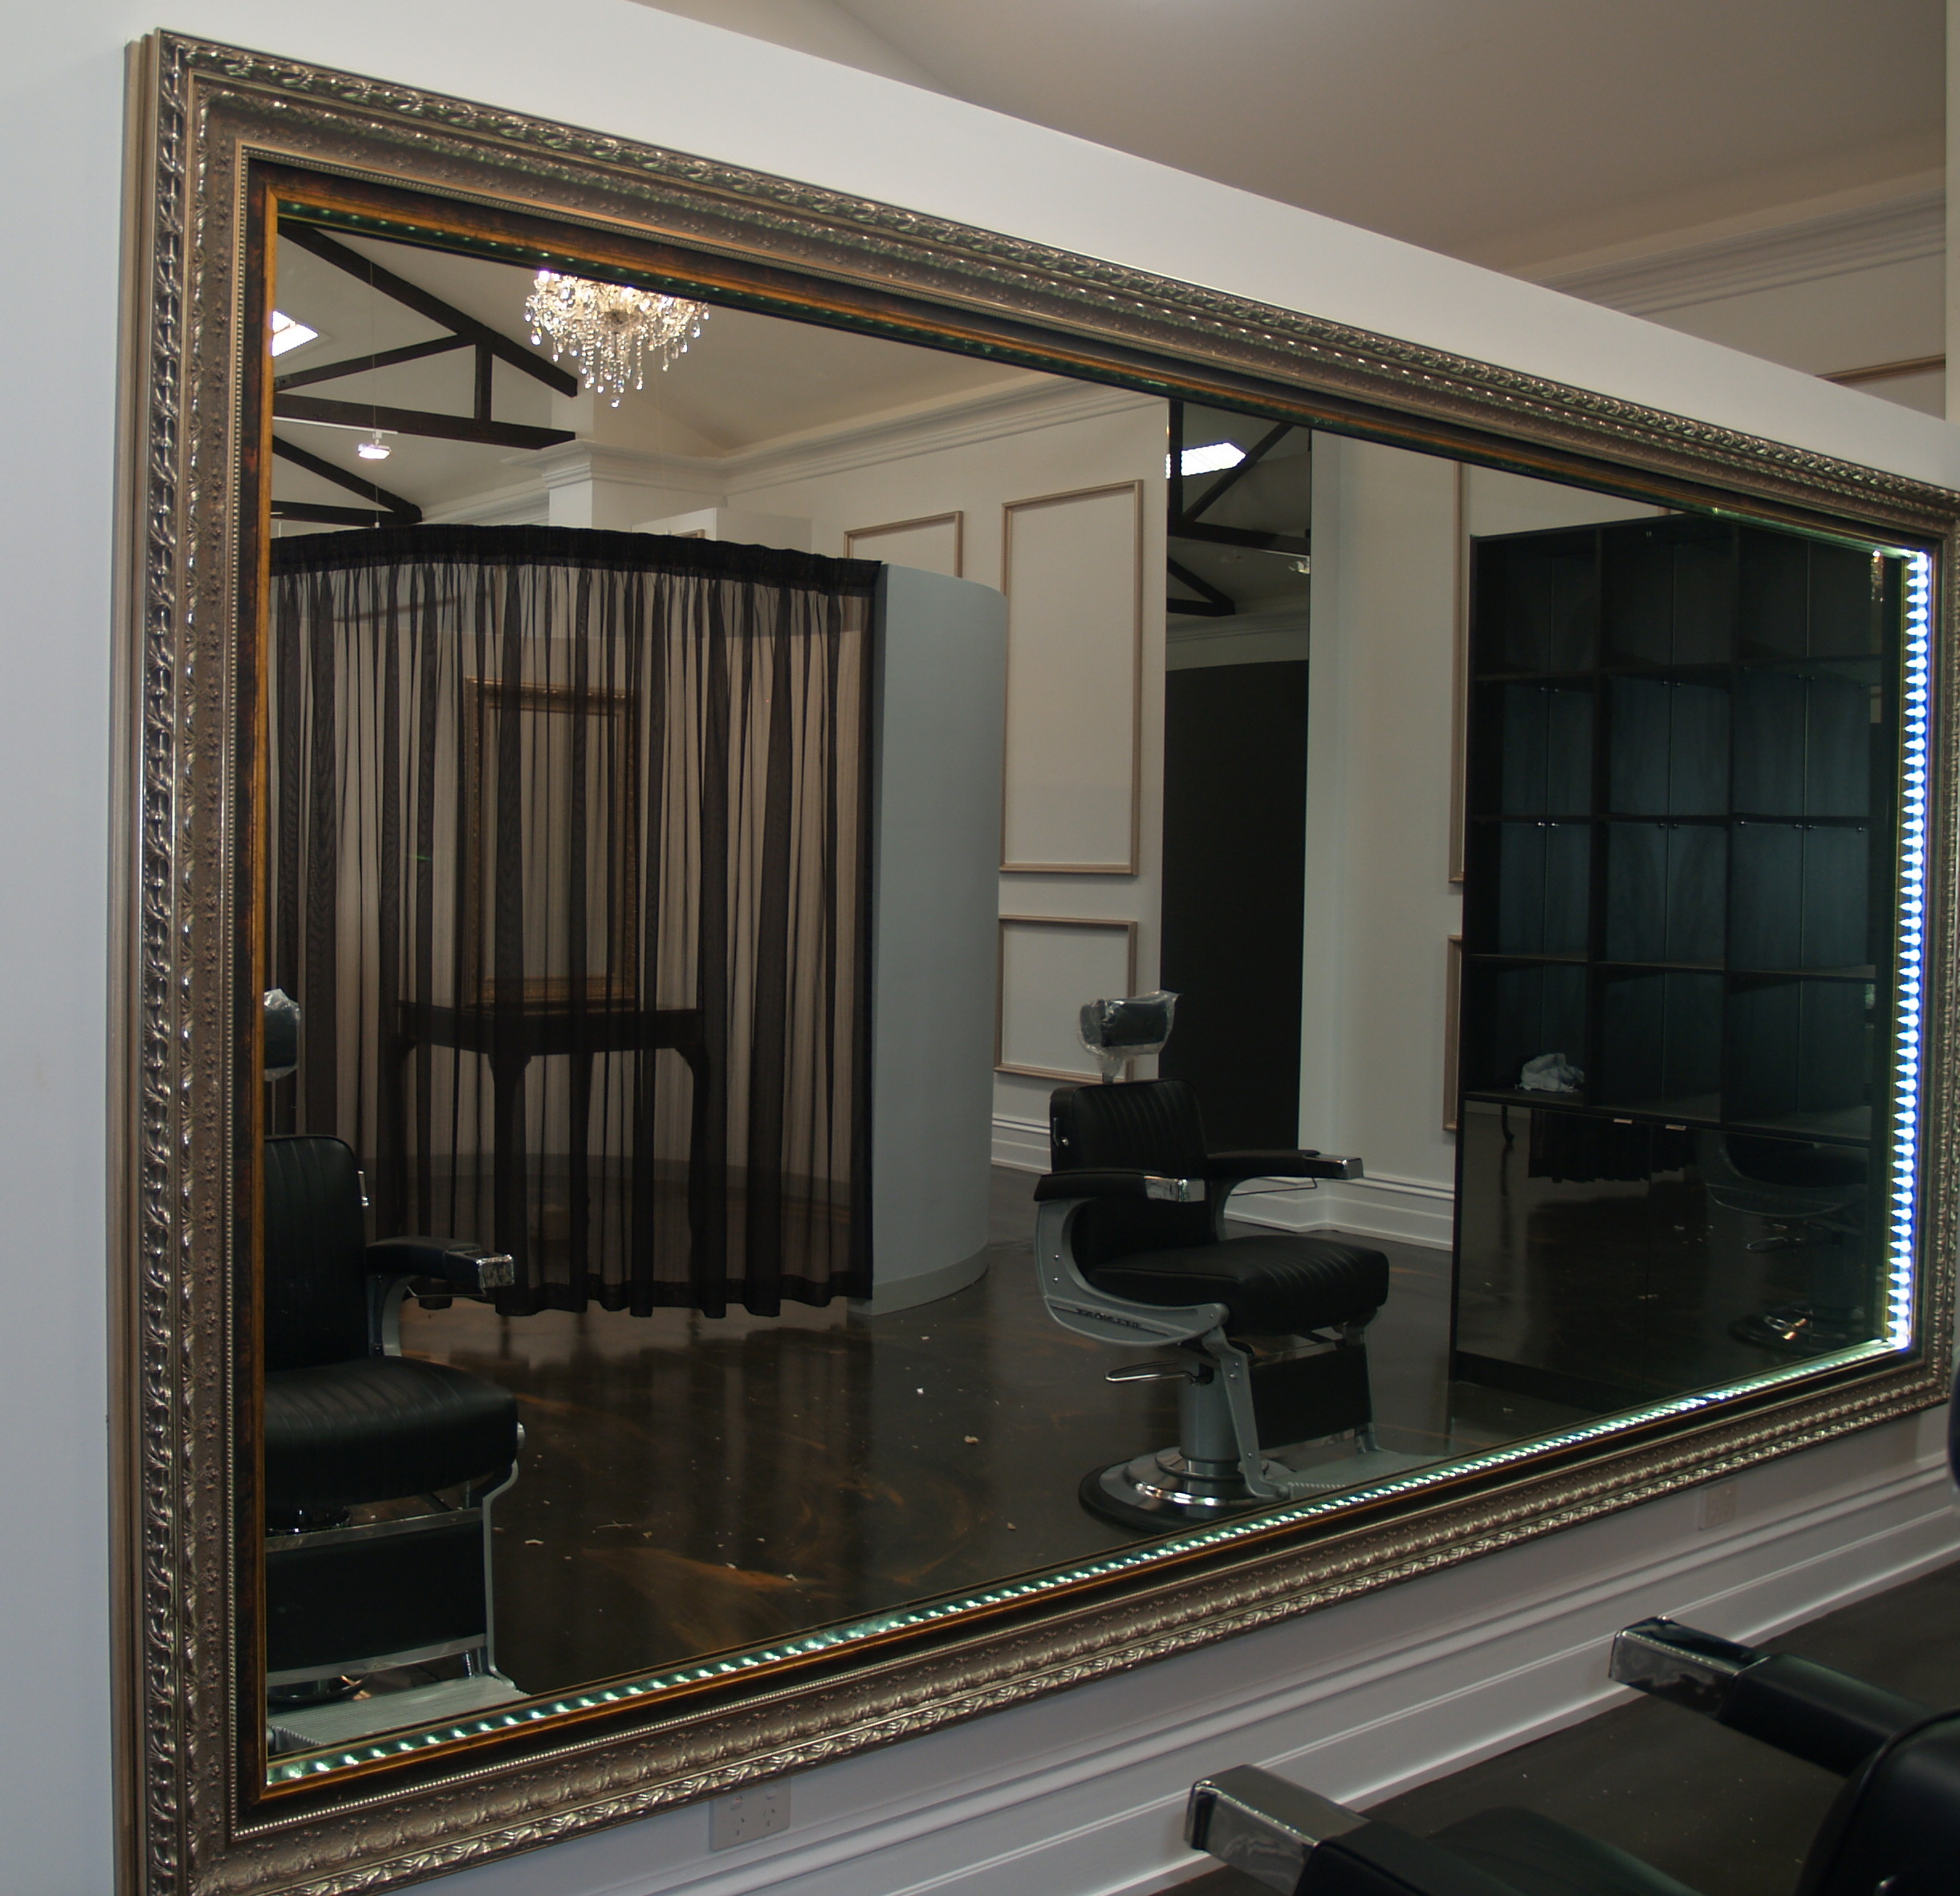 hairdressing-salon-large-mirror.jpg